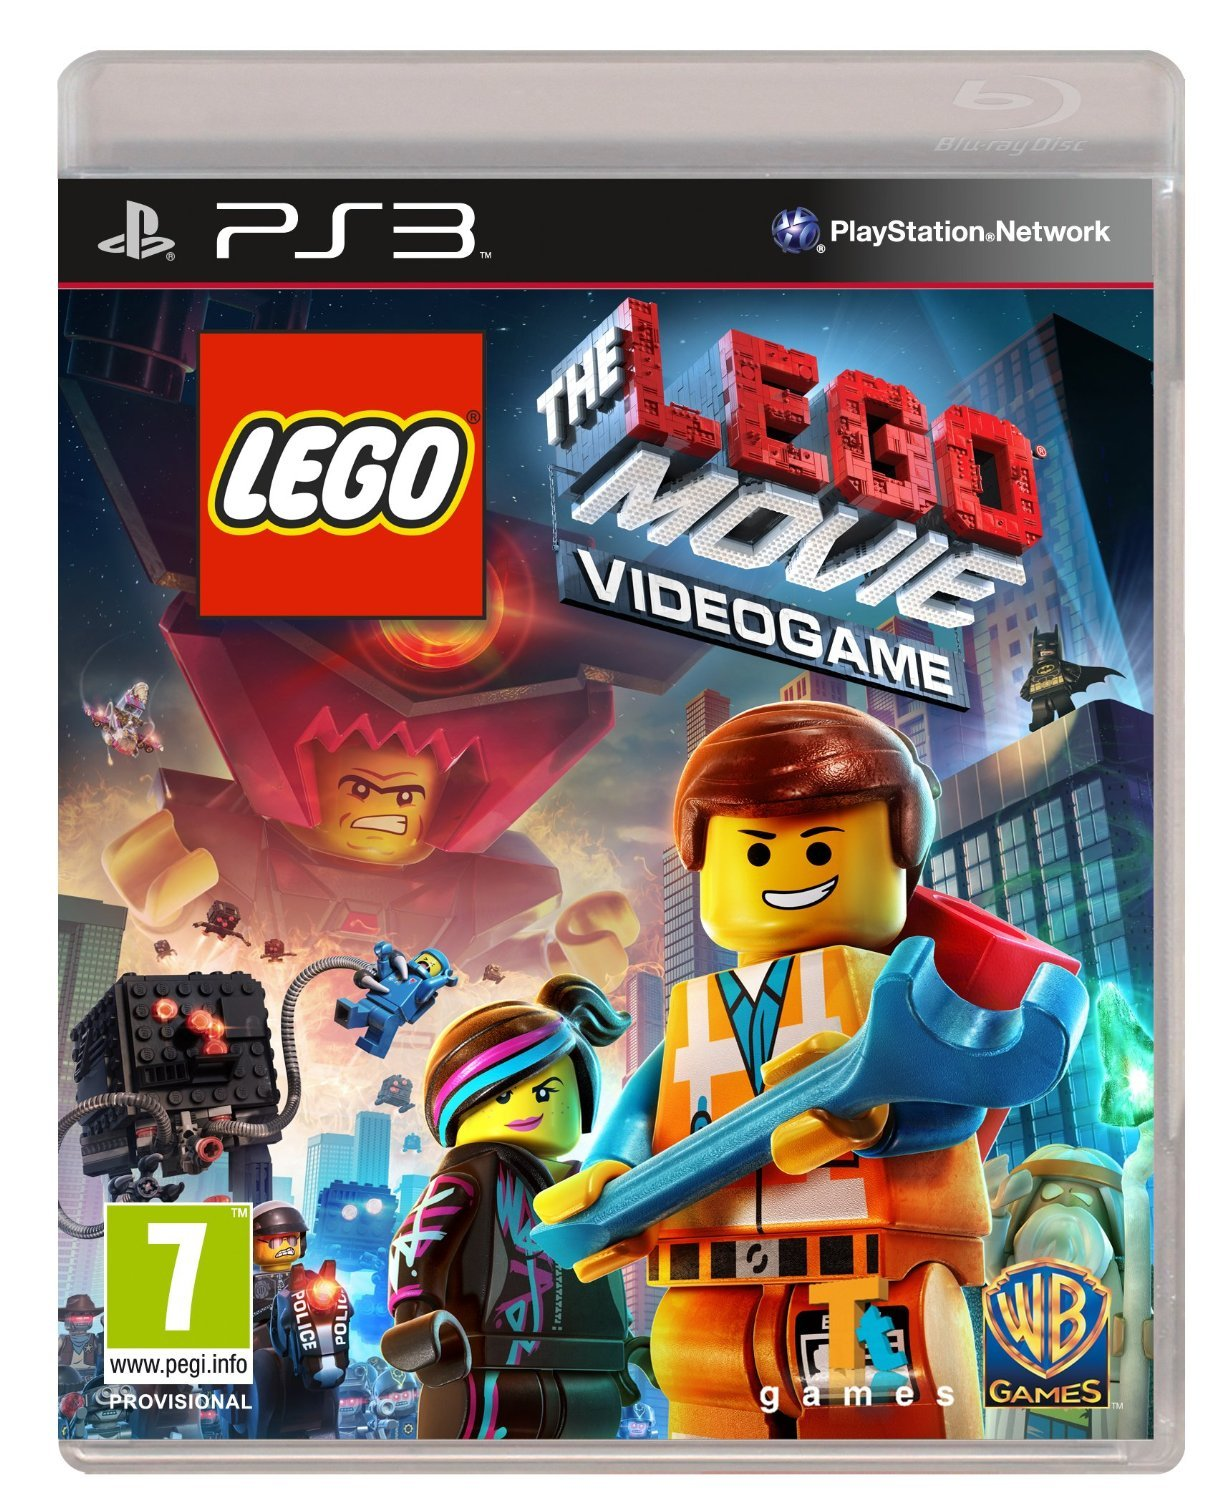 The Lego Movie Videogame (Xbox 360) Review 2